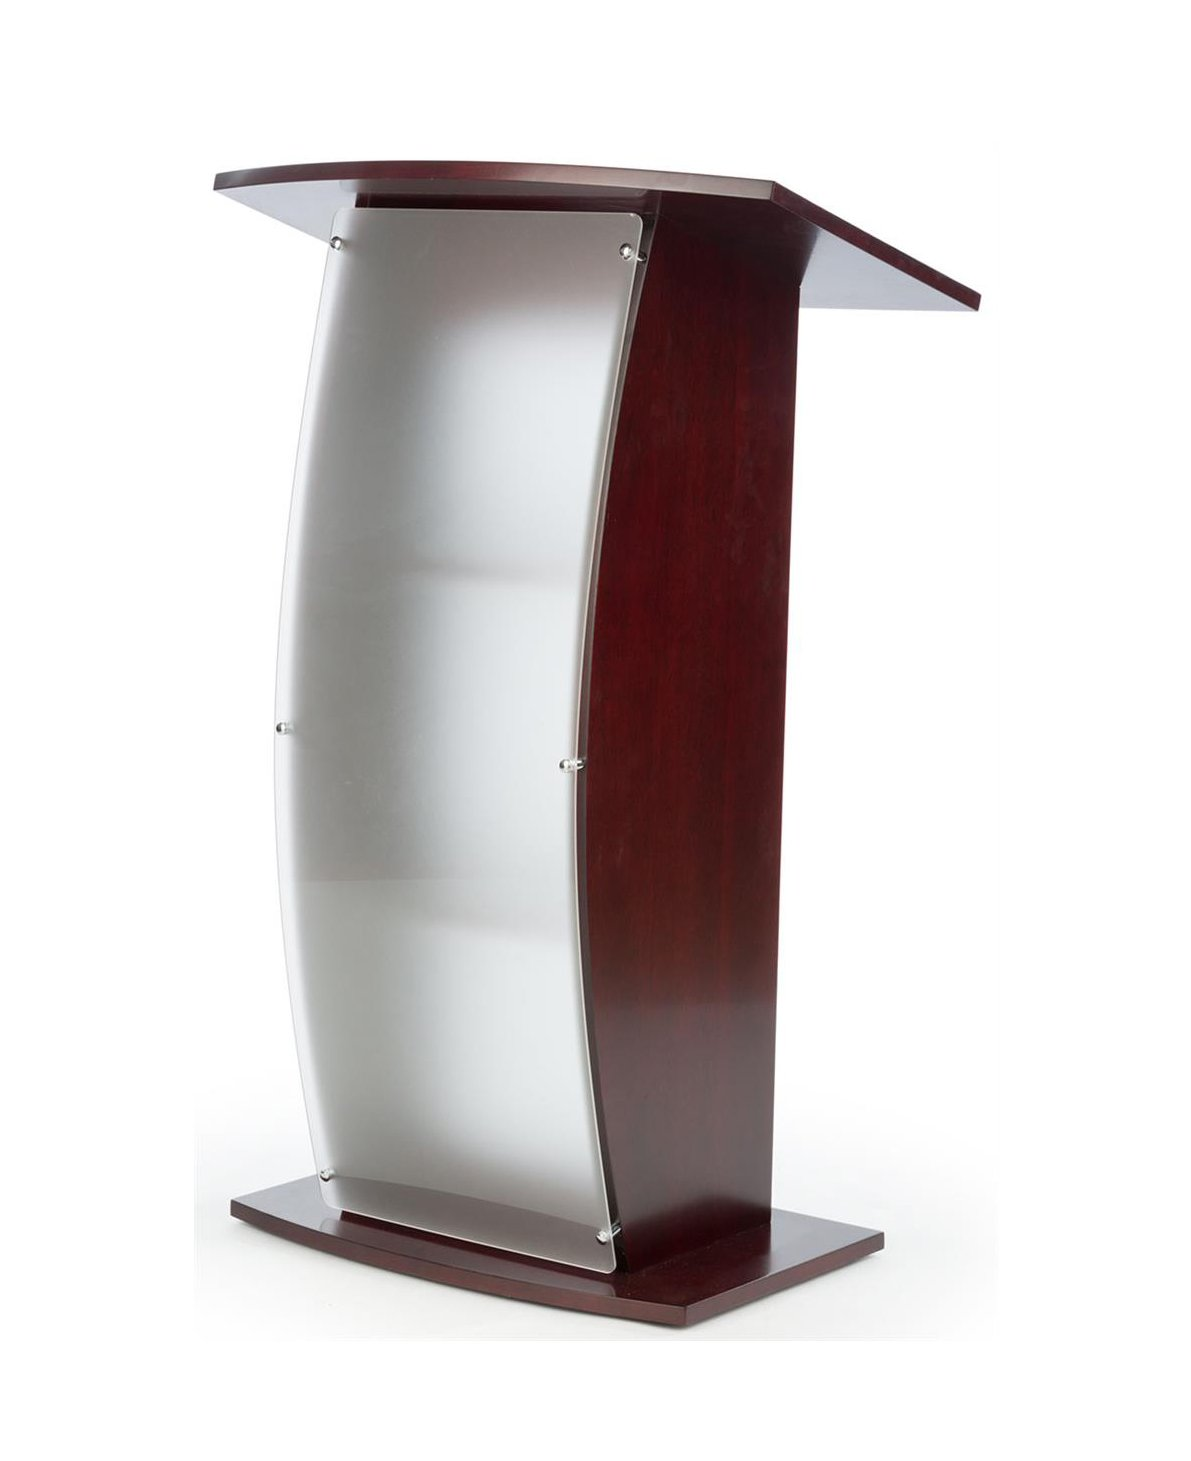 FixtureDisplays 44.25'' Tall Podium for Floor, Curved Frosted Front Acrylic Panel - Red Mahogany 19658